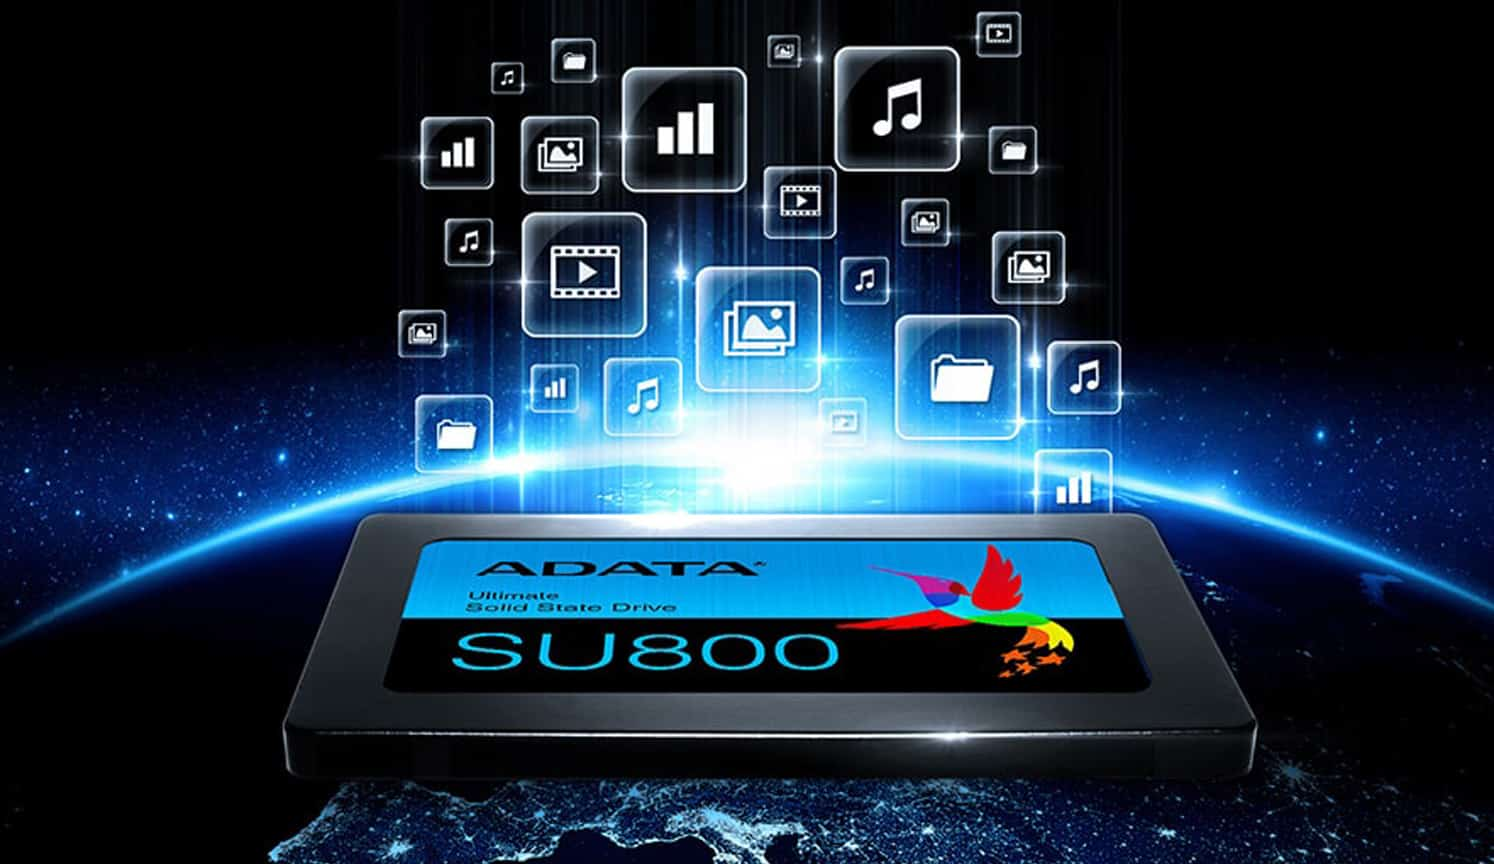 Sata Solid State Drive as the third related product of the Best Laptop Hard Drive